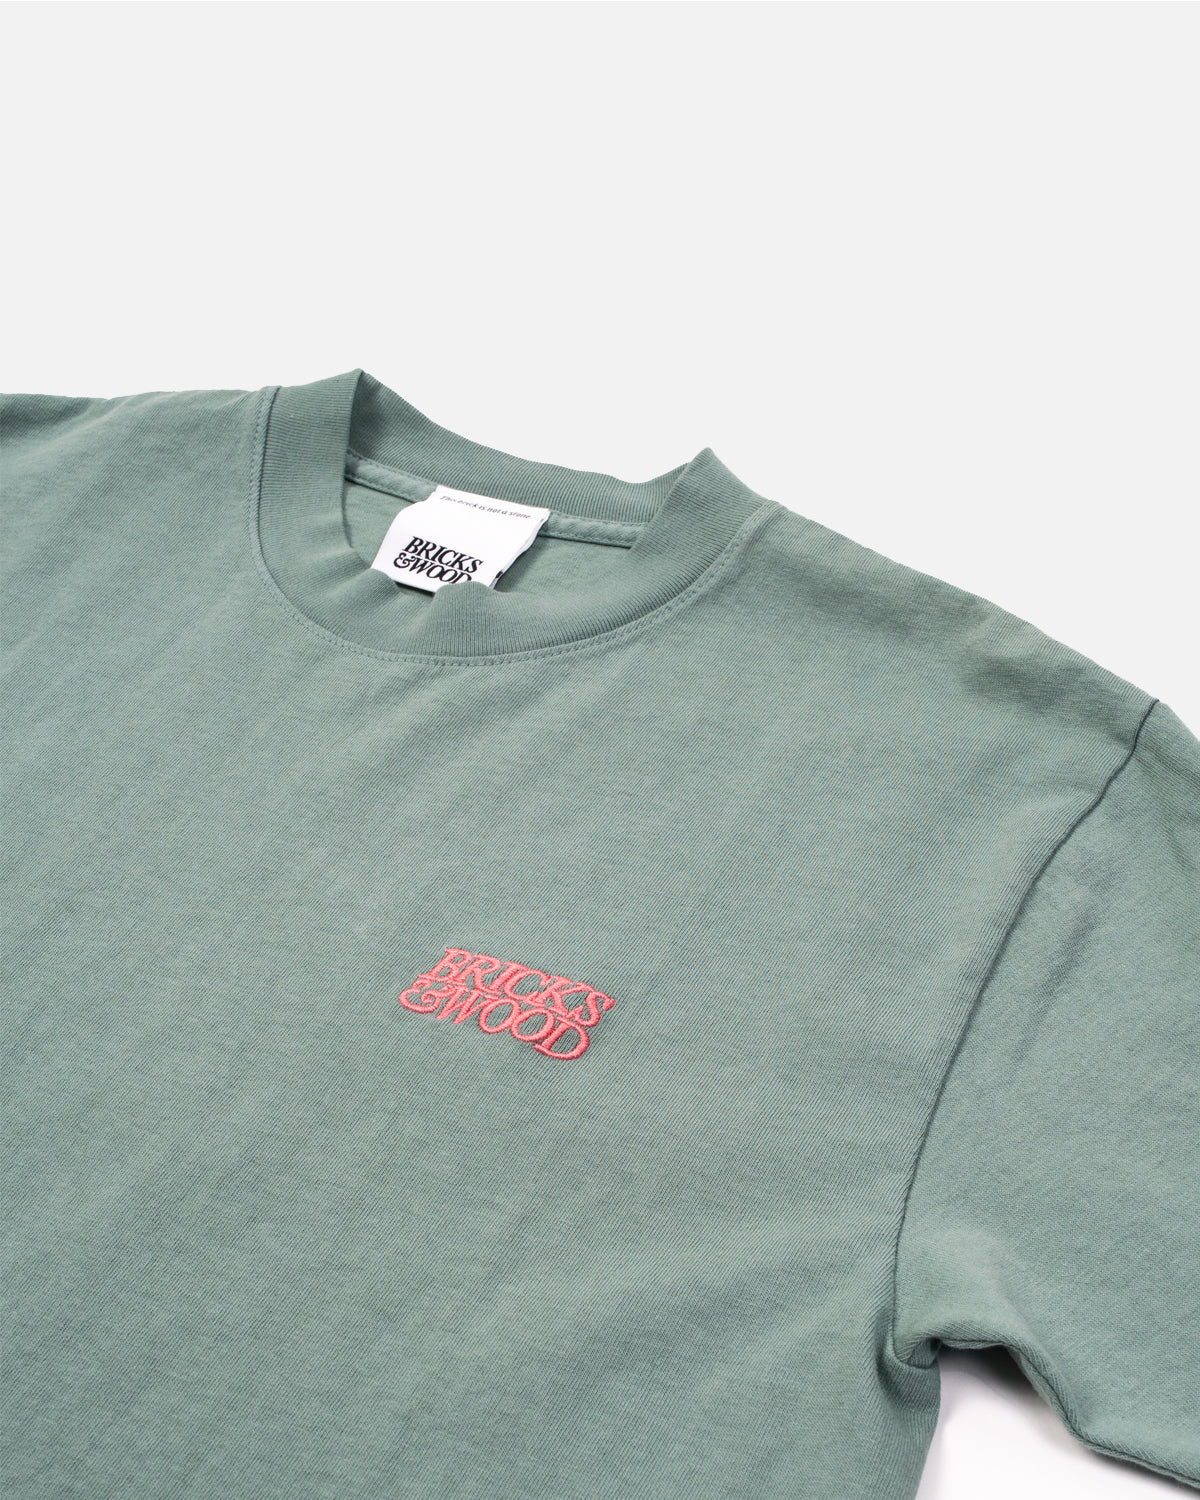 Bricks & Wood Green Tonal Logo Tee